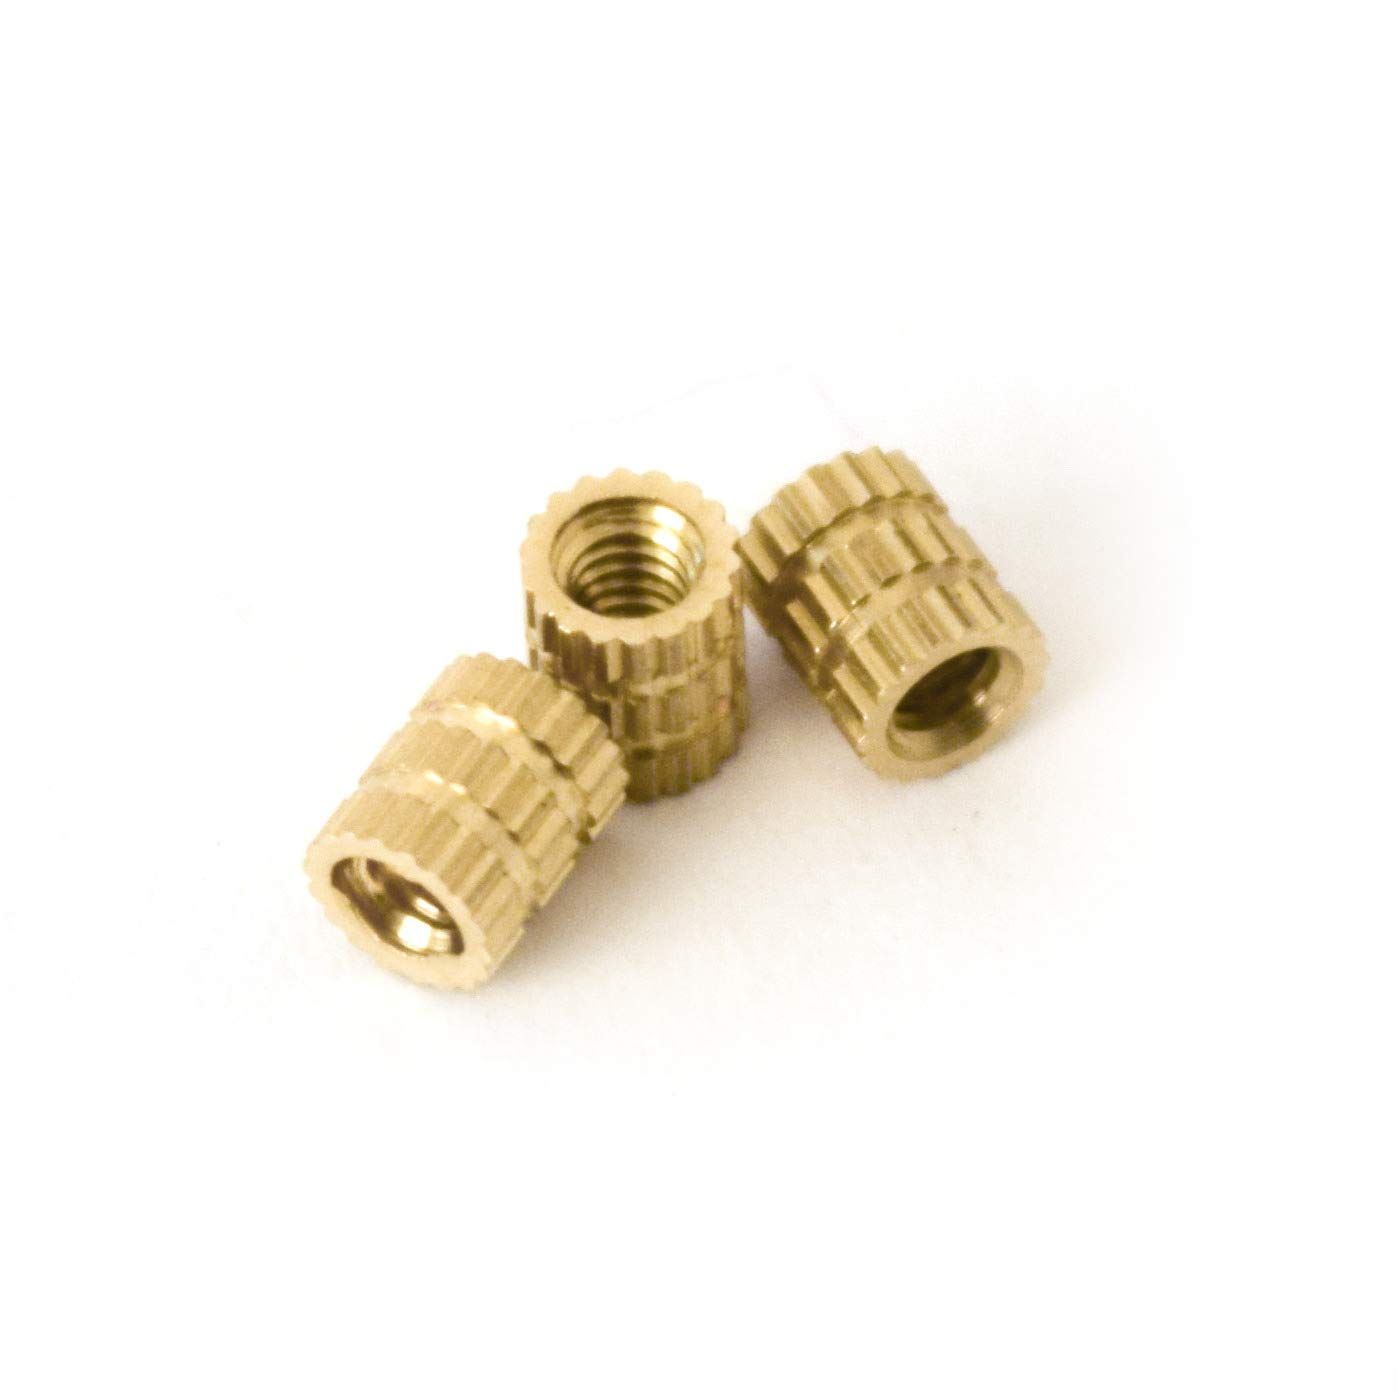 [ J&J Products ] M2 Brass Insert, 4 mm (Length), Female Thread, Press Fit/Injection Mold Type, 100 pcs by J&J Products